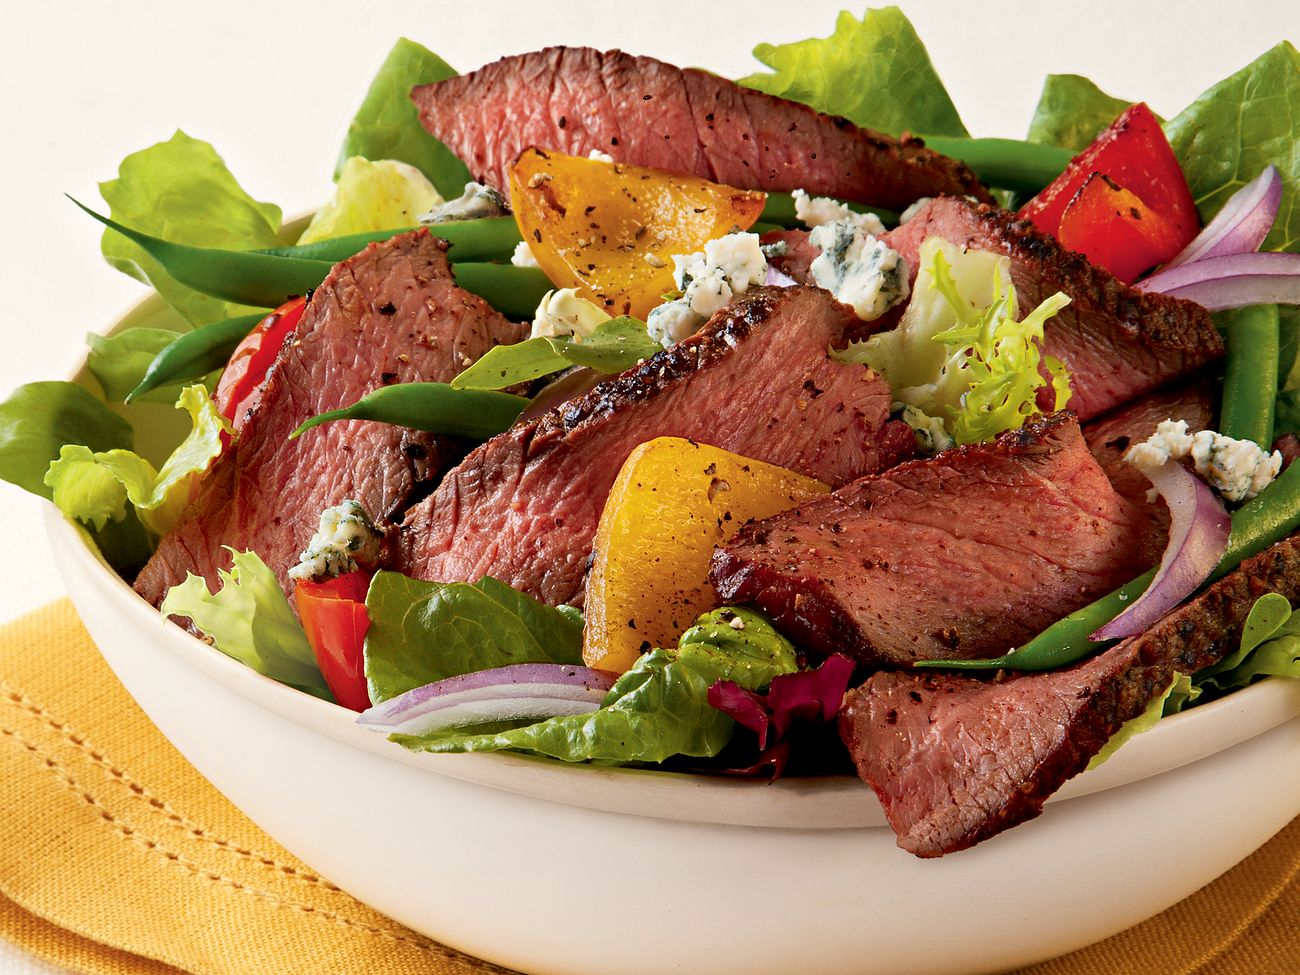 champagne-steak-salad-with-blue-cheese-horizontal